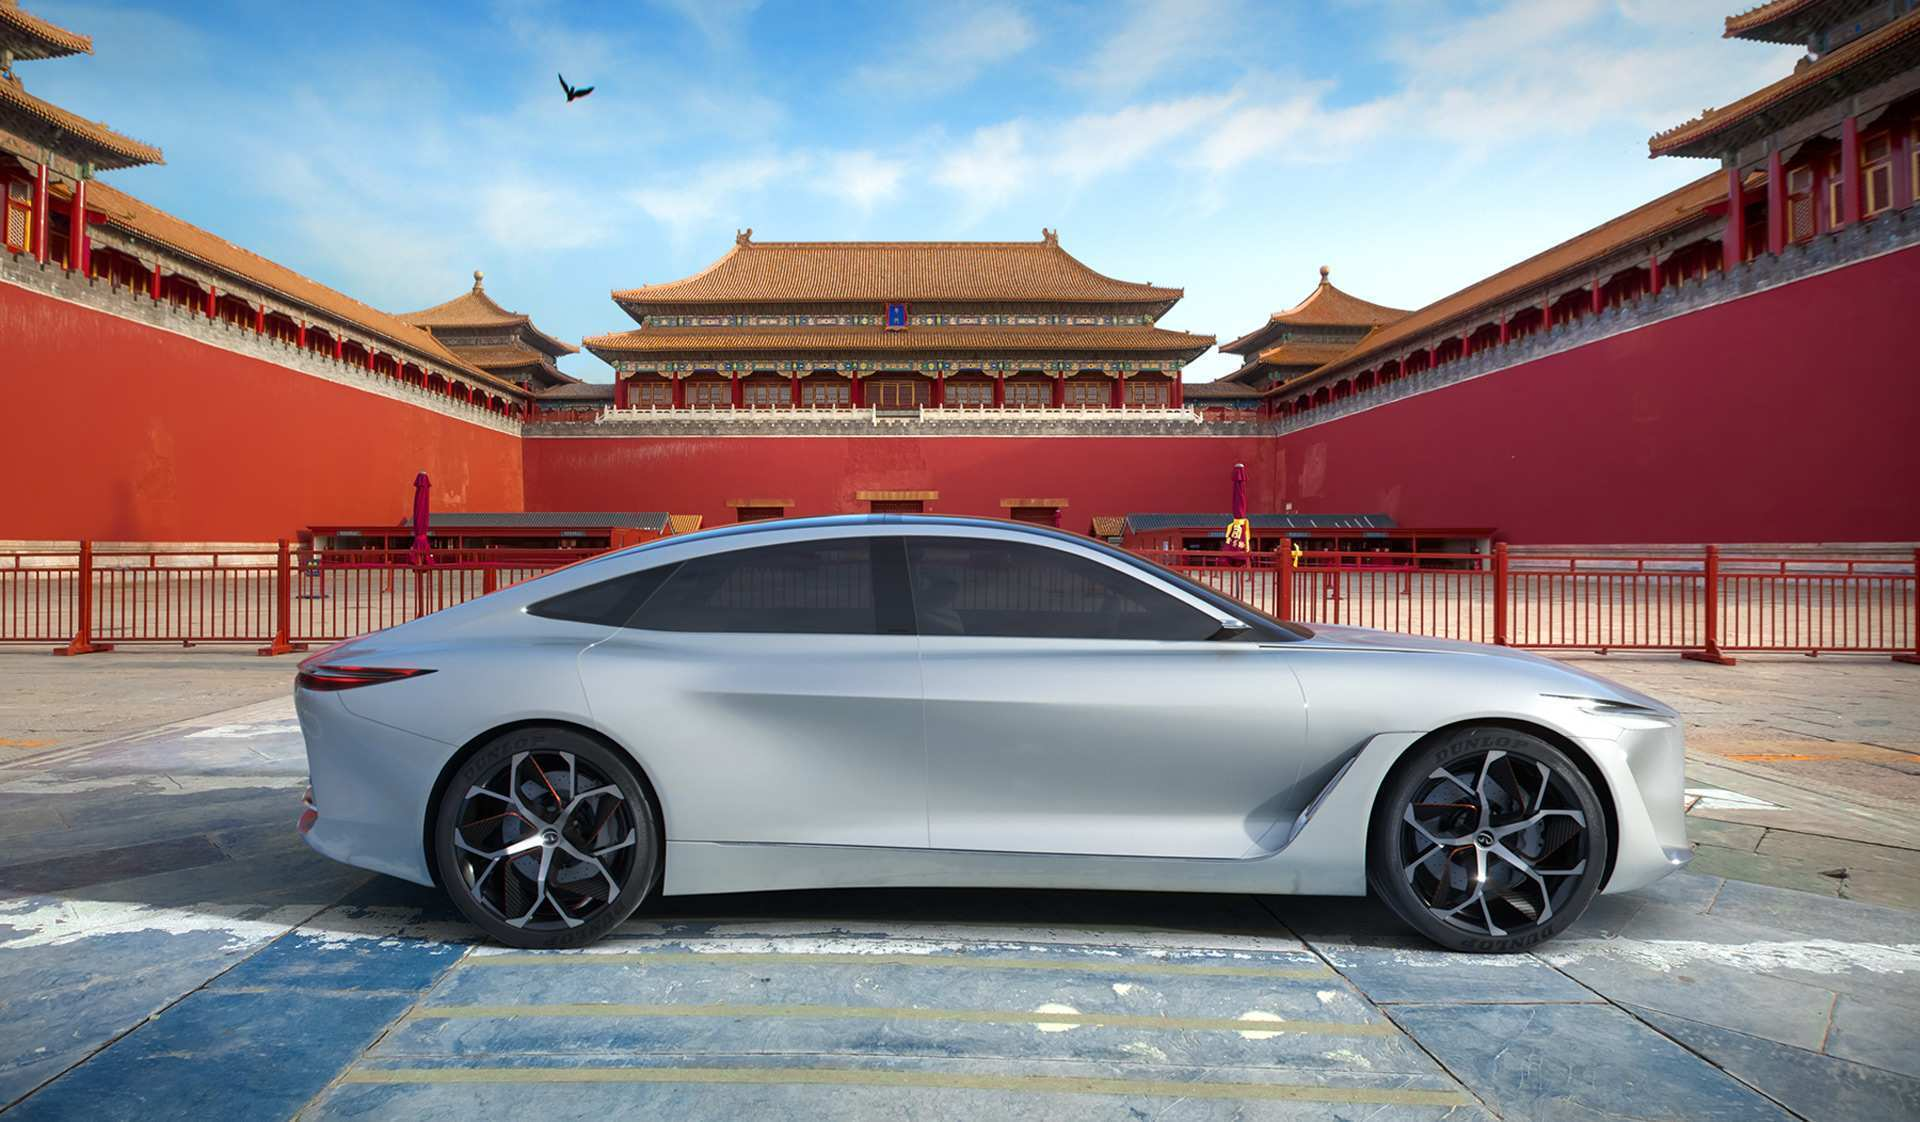 77 Best Review 2020 Infiniti New Concept Model by 2020 Infiniti New Concept